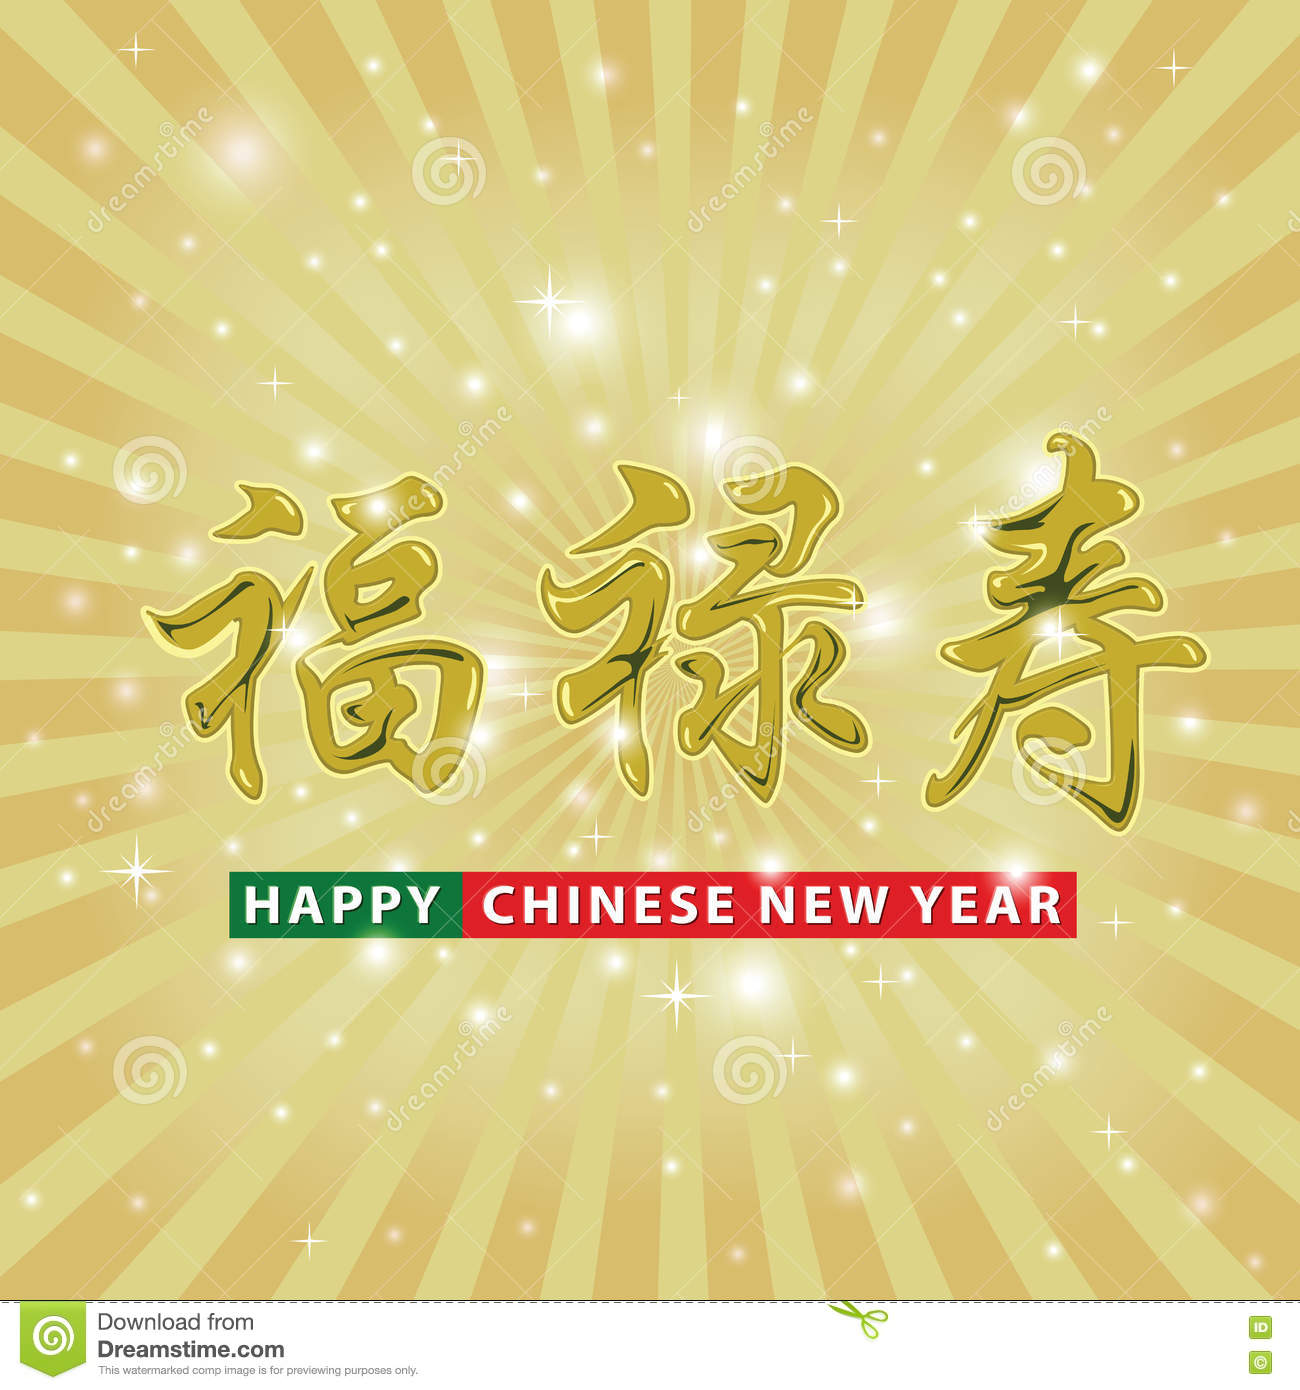 New year greetings words gallery greeting card examples happy chinese new year greetings with you stock vector happy chinese new year greetings with you kristyandbryce Choice Image